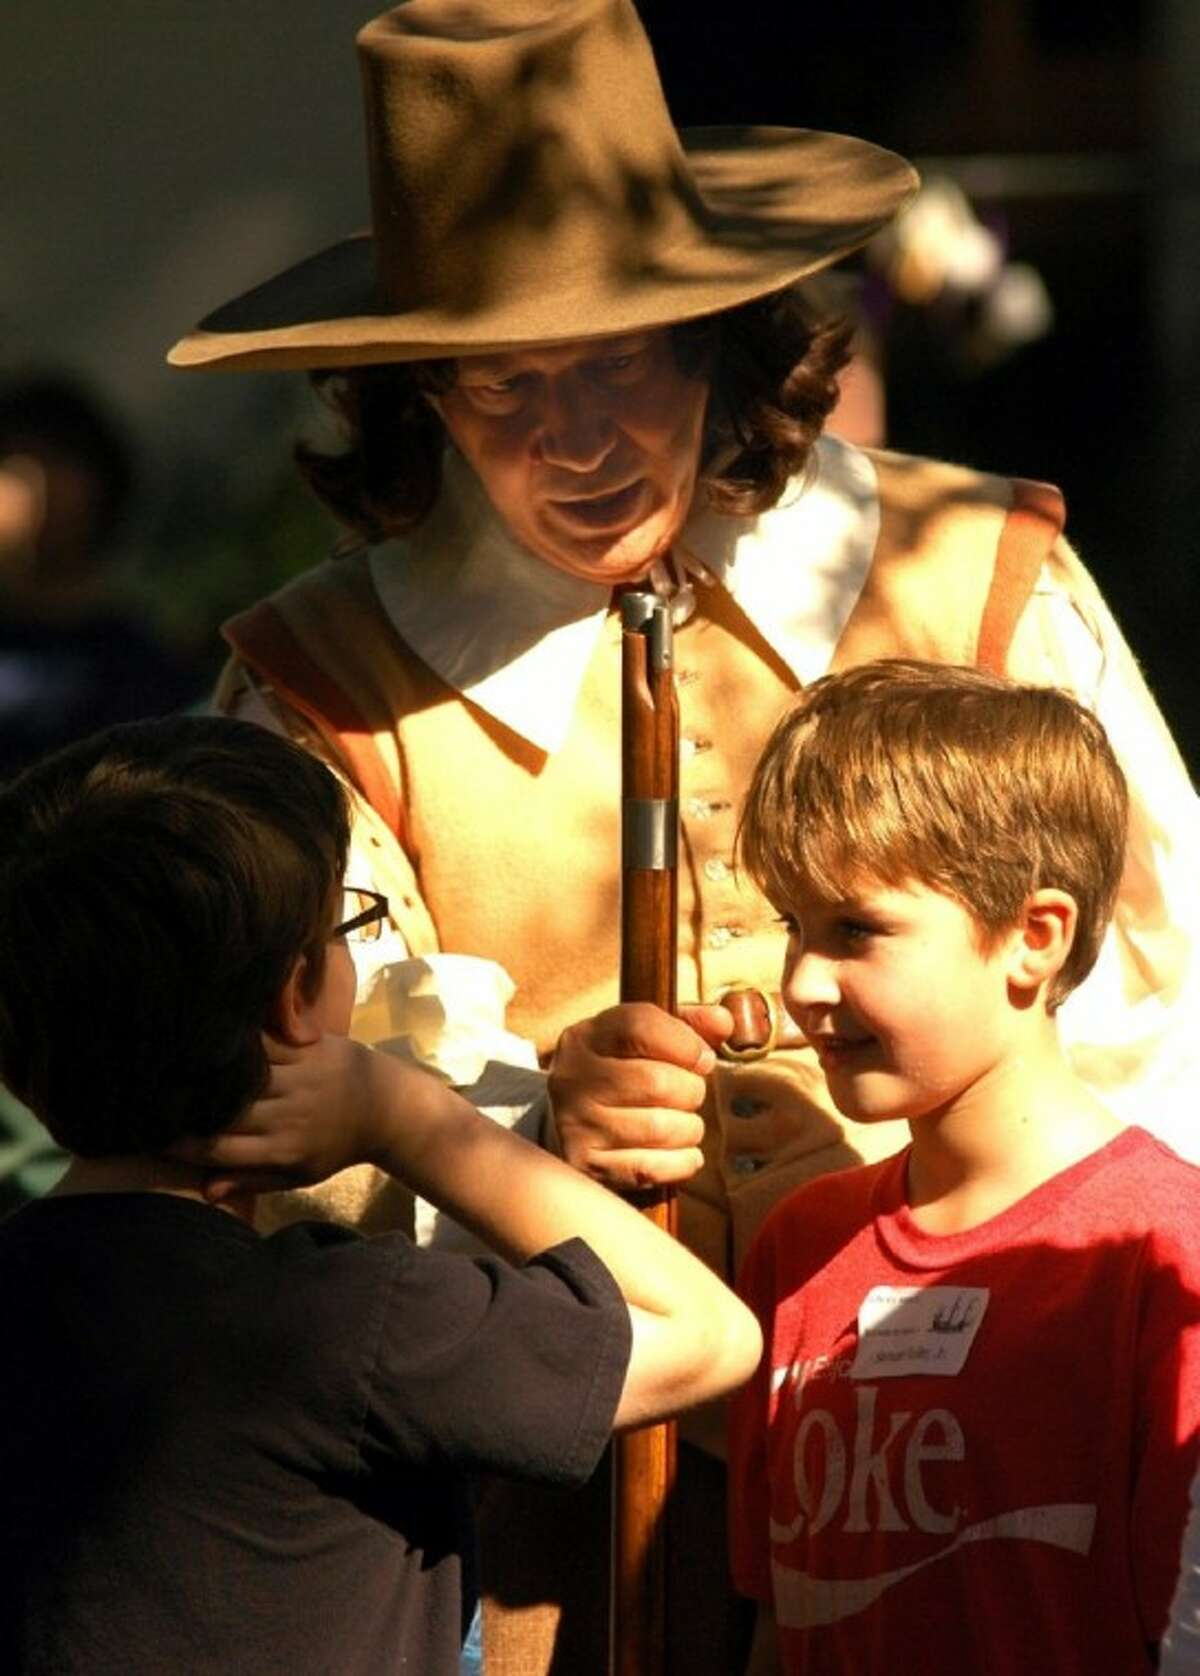 Historical recreator John Keahey, in 17th century costume, with some young visitors.